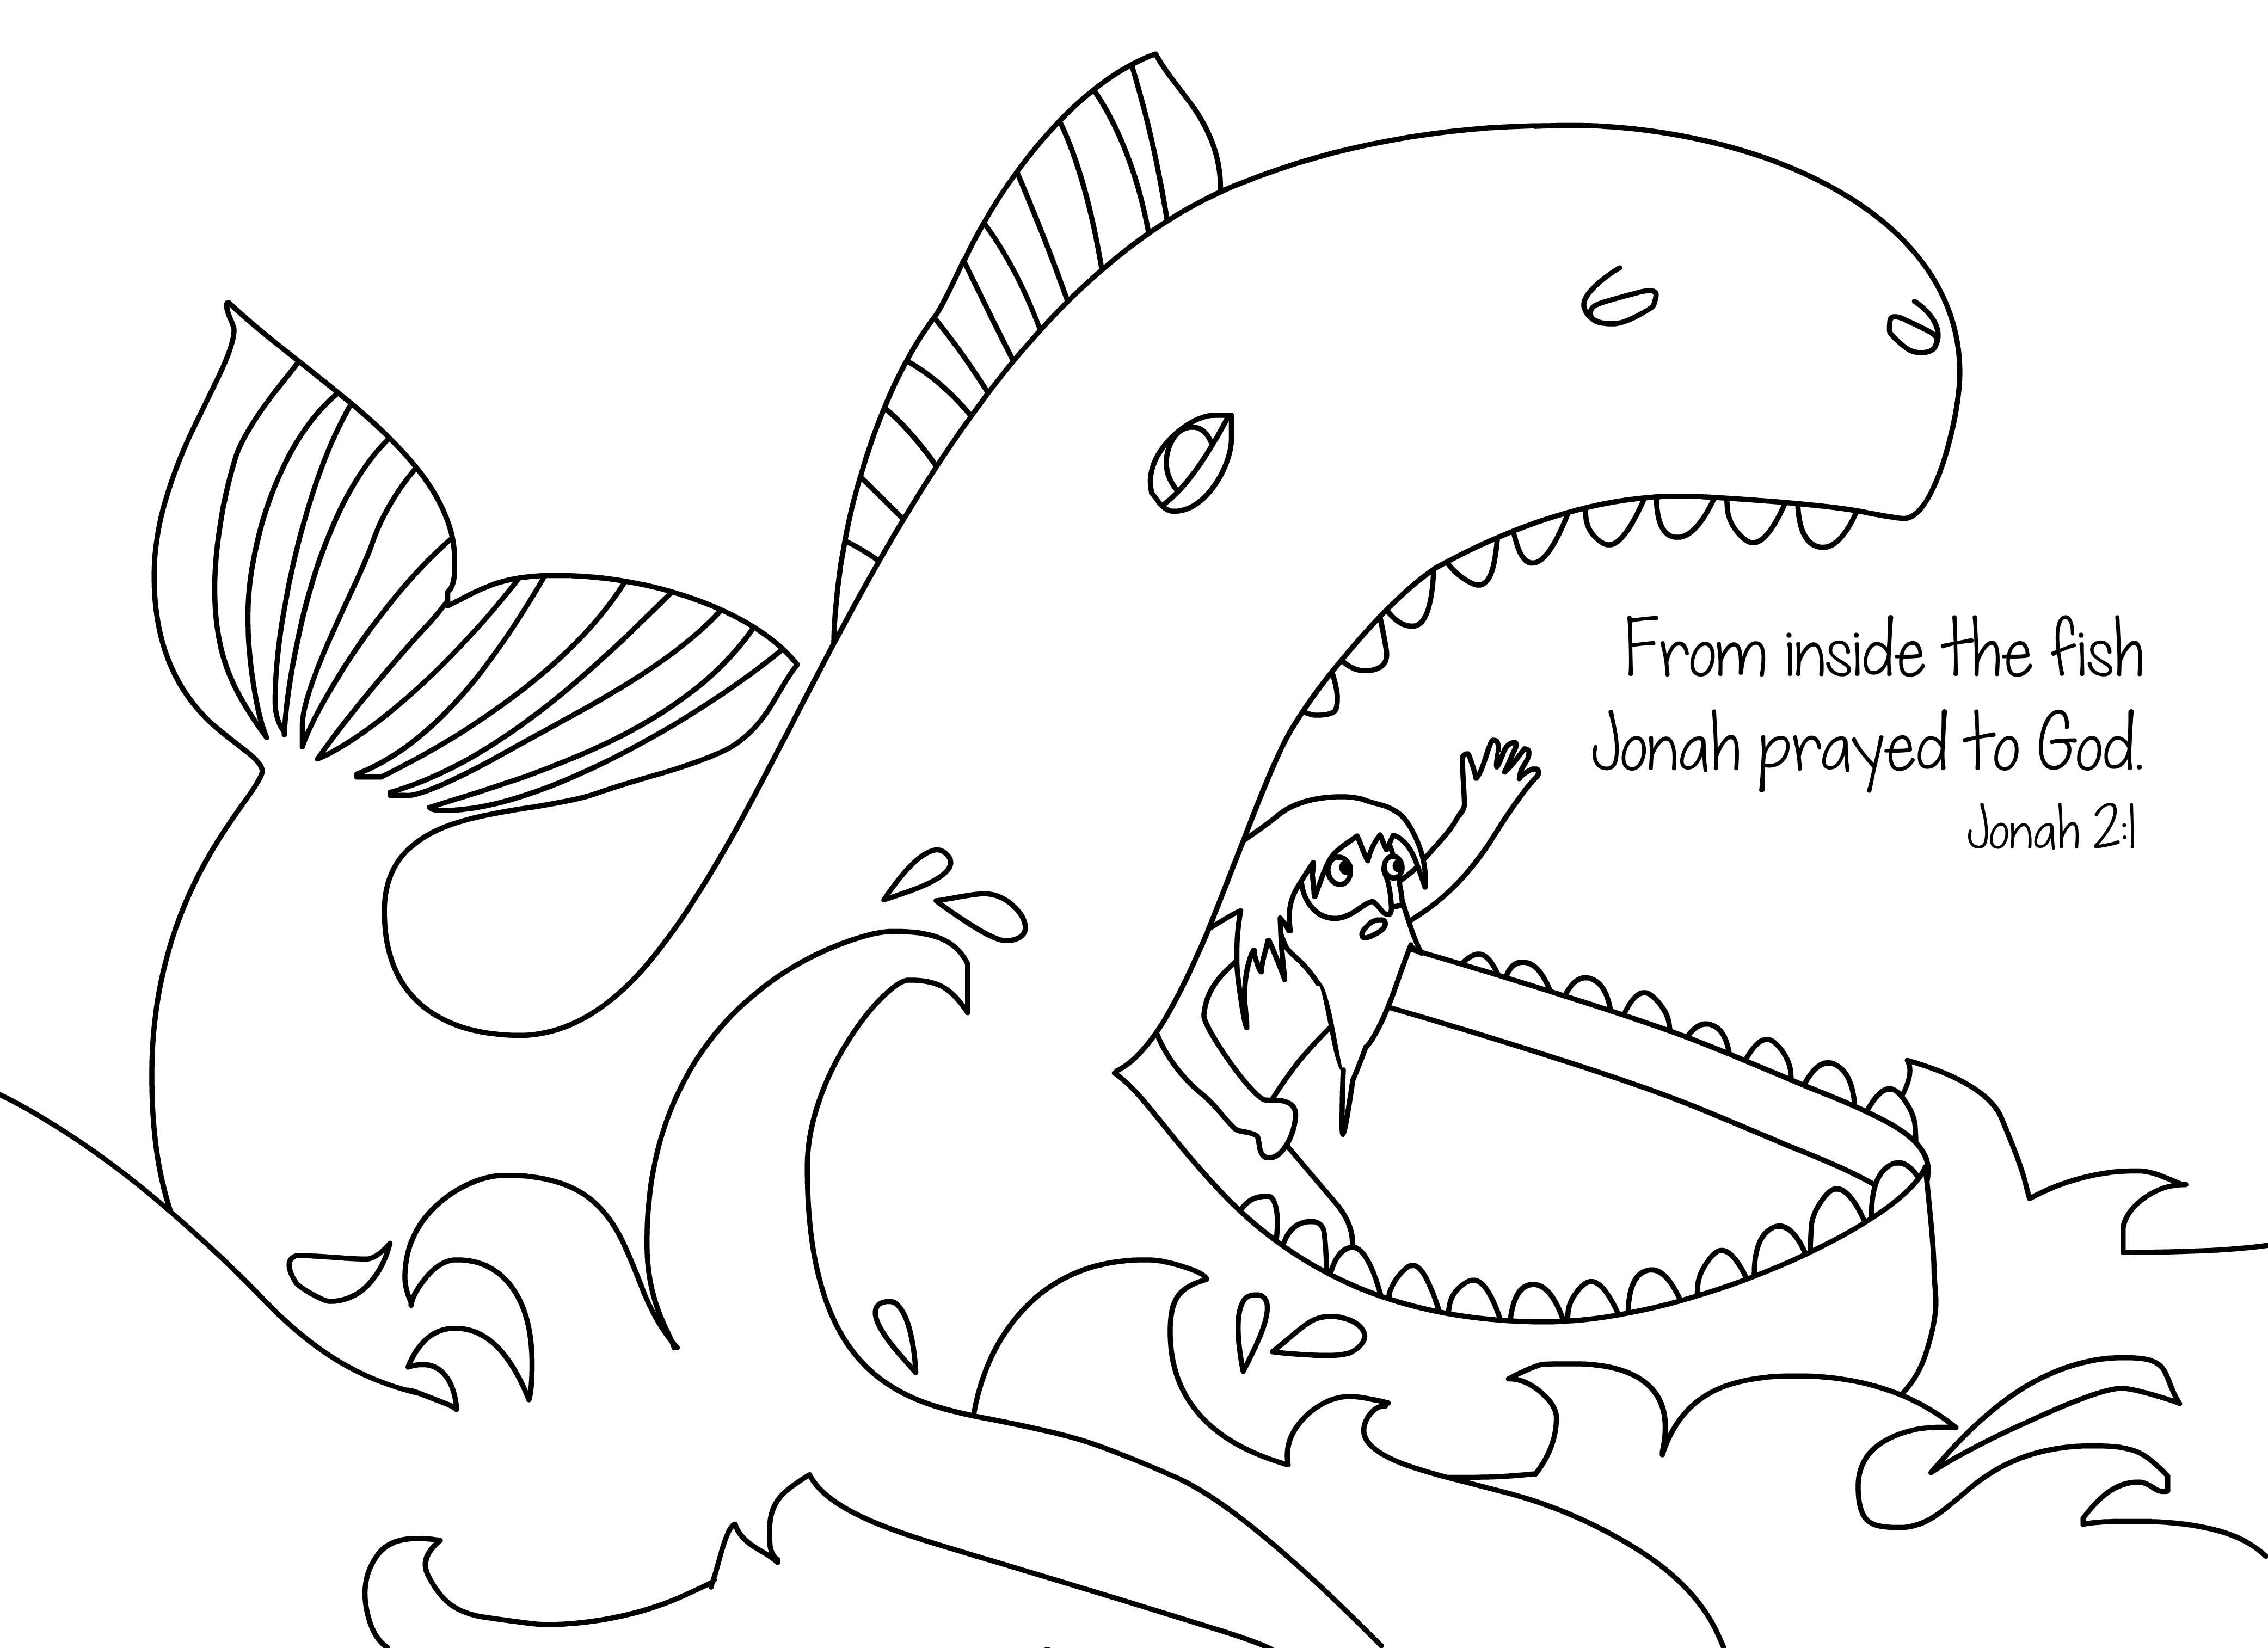 jonah coloring page jonah and the whale bible story coloring pages coloring home coloring jonah page